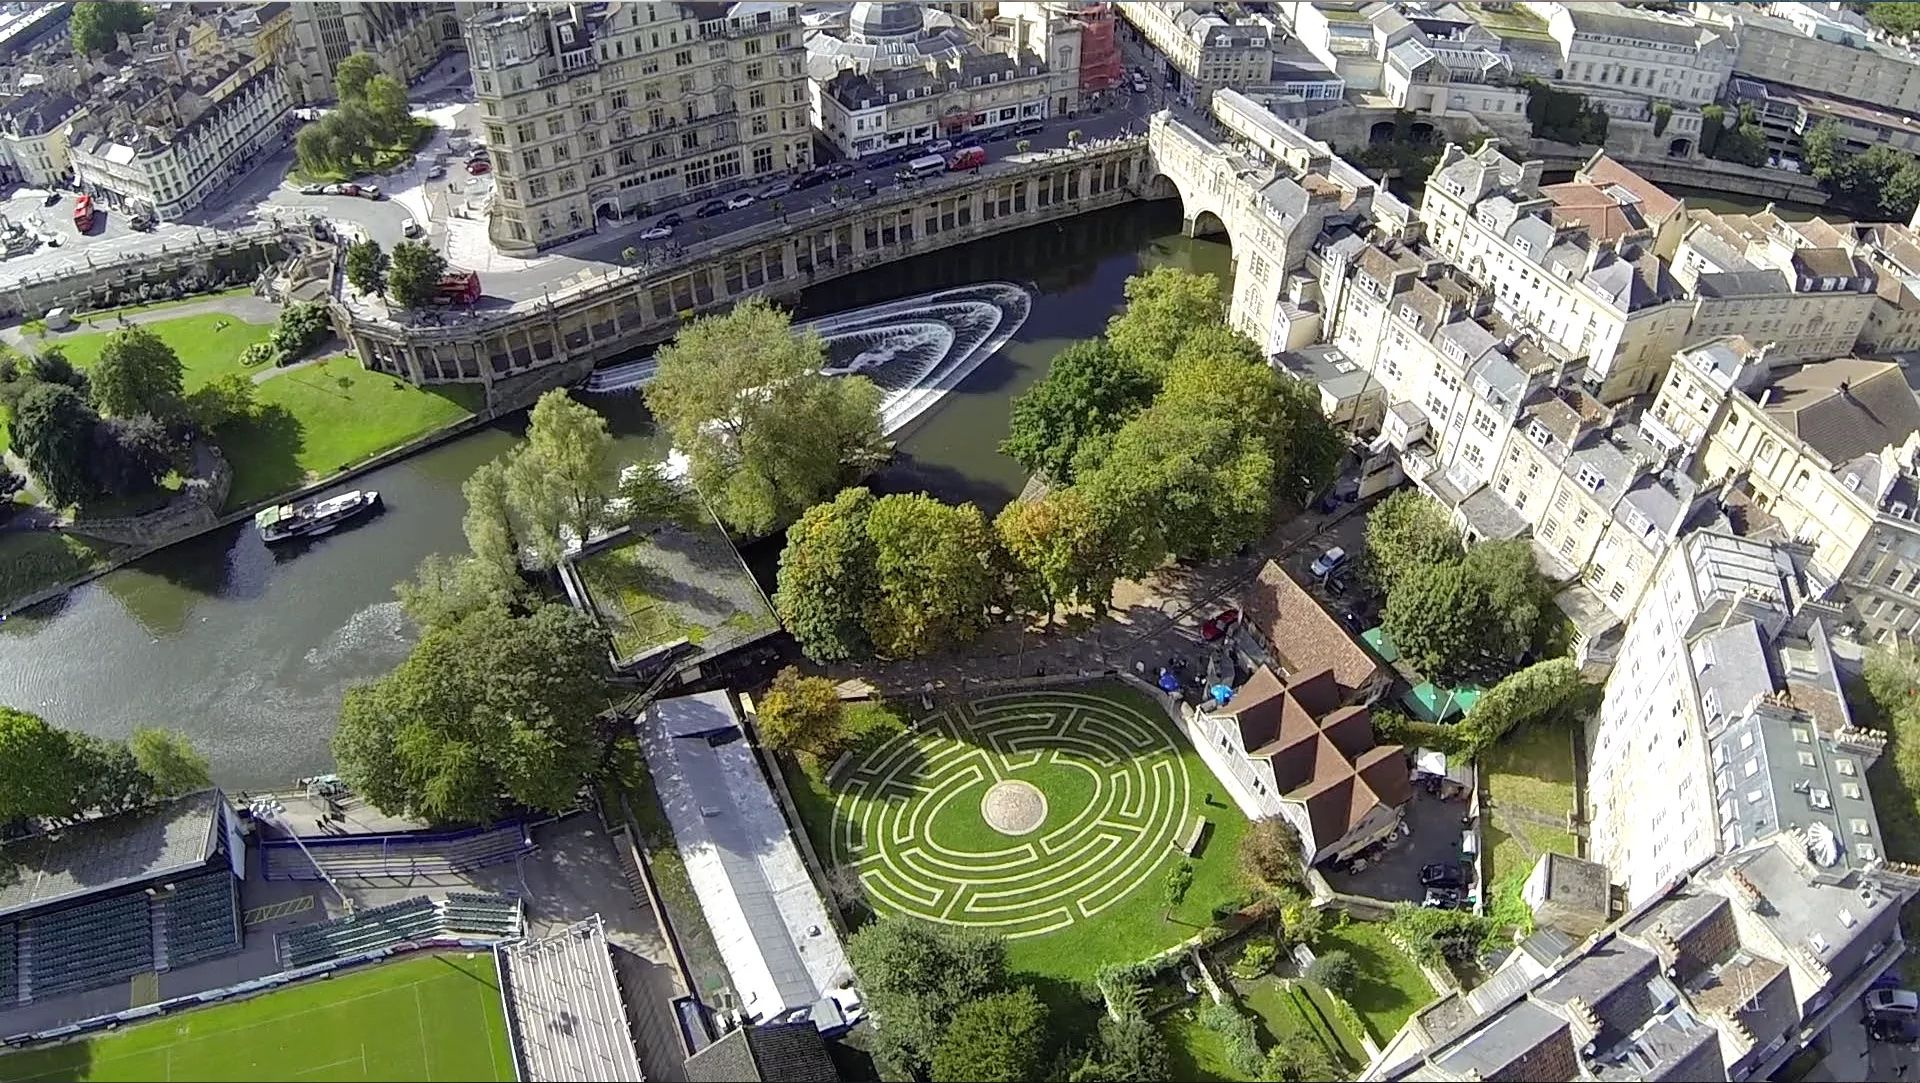 Aerial View of Pulteney Weir and the Beazer Maze